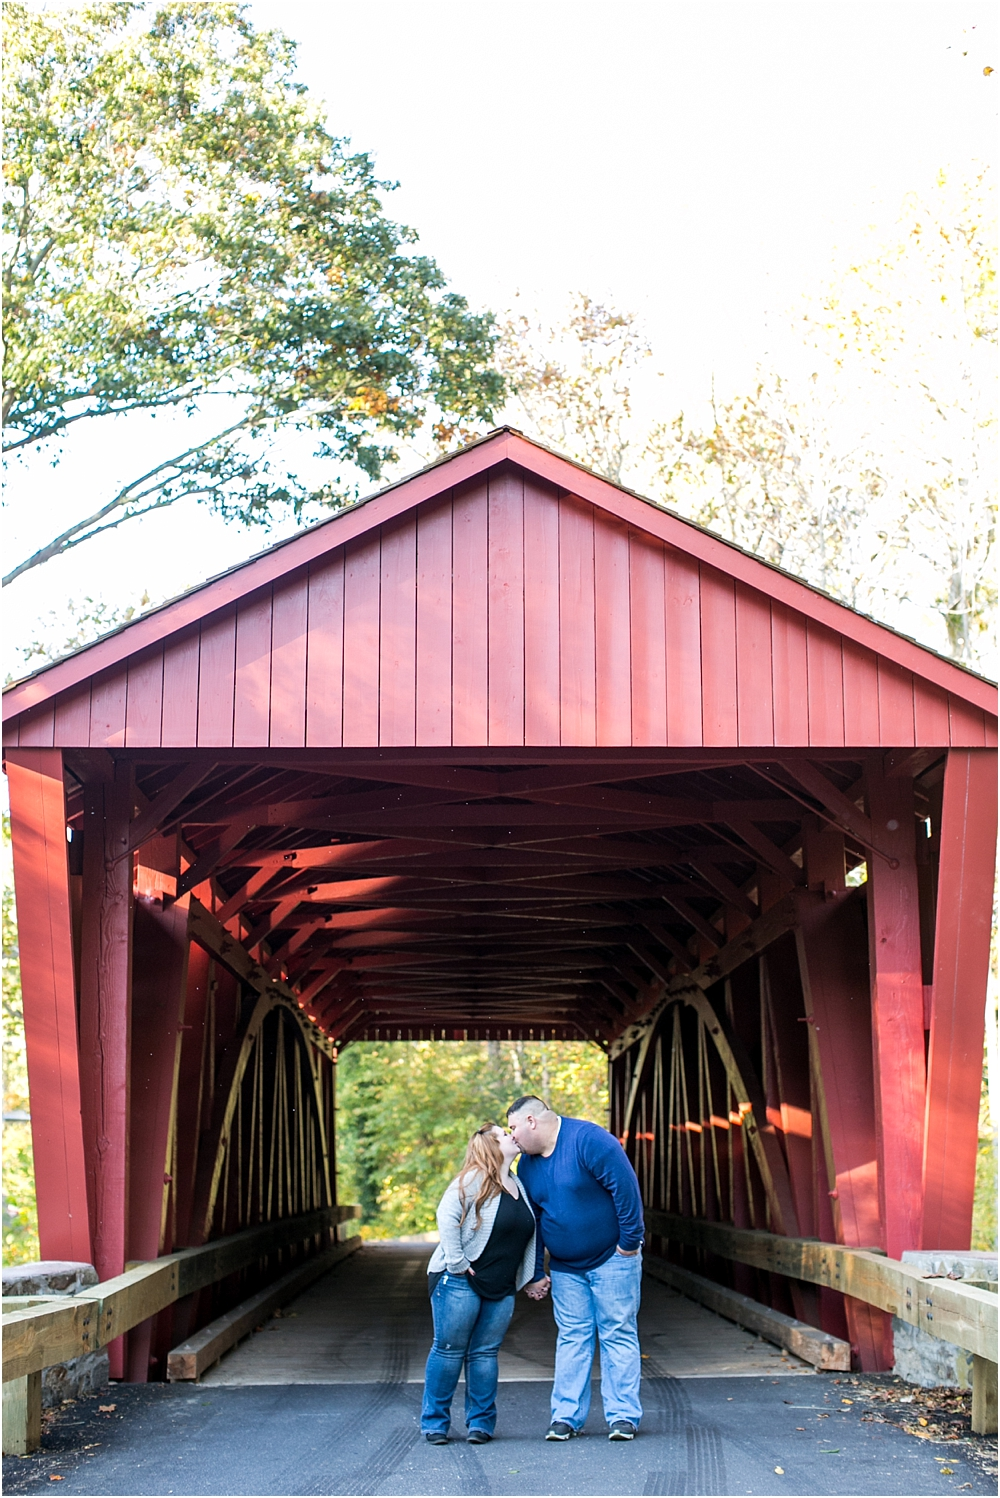 victoria john engagement session jerusalem mills living radiant photography photos_0008.jpg